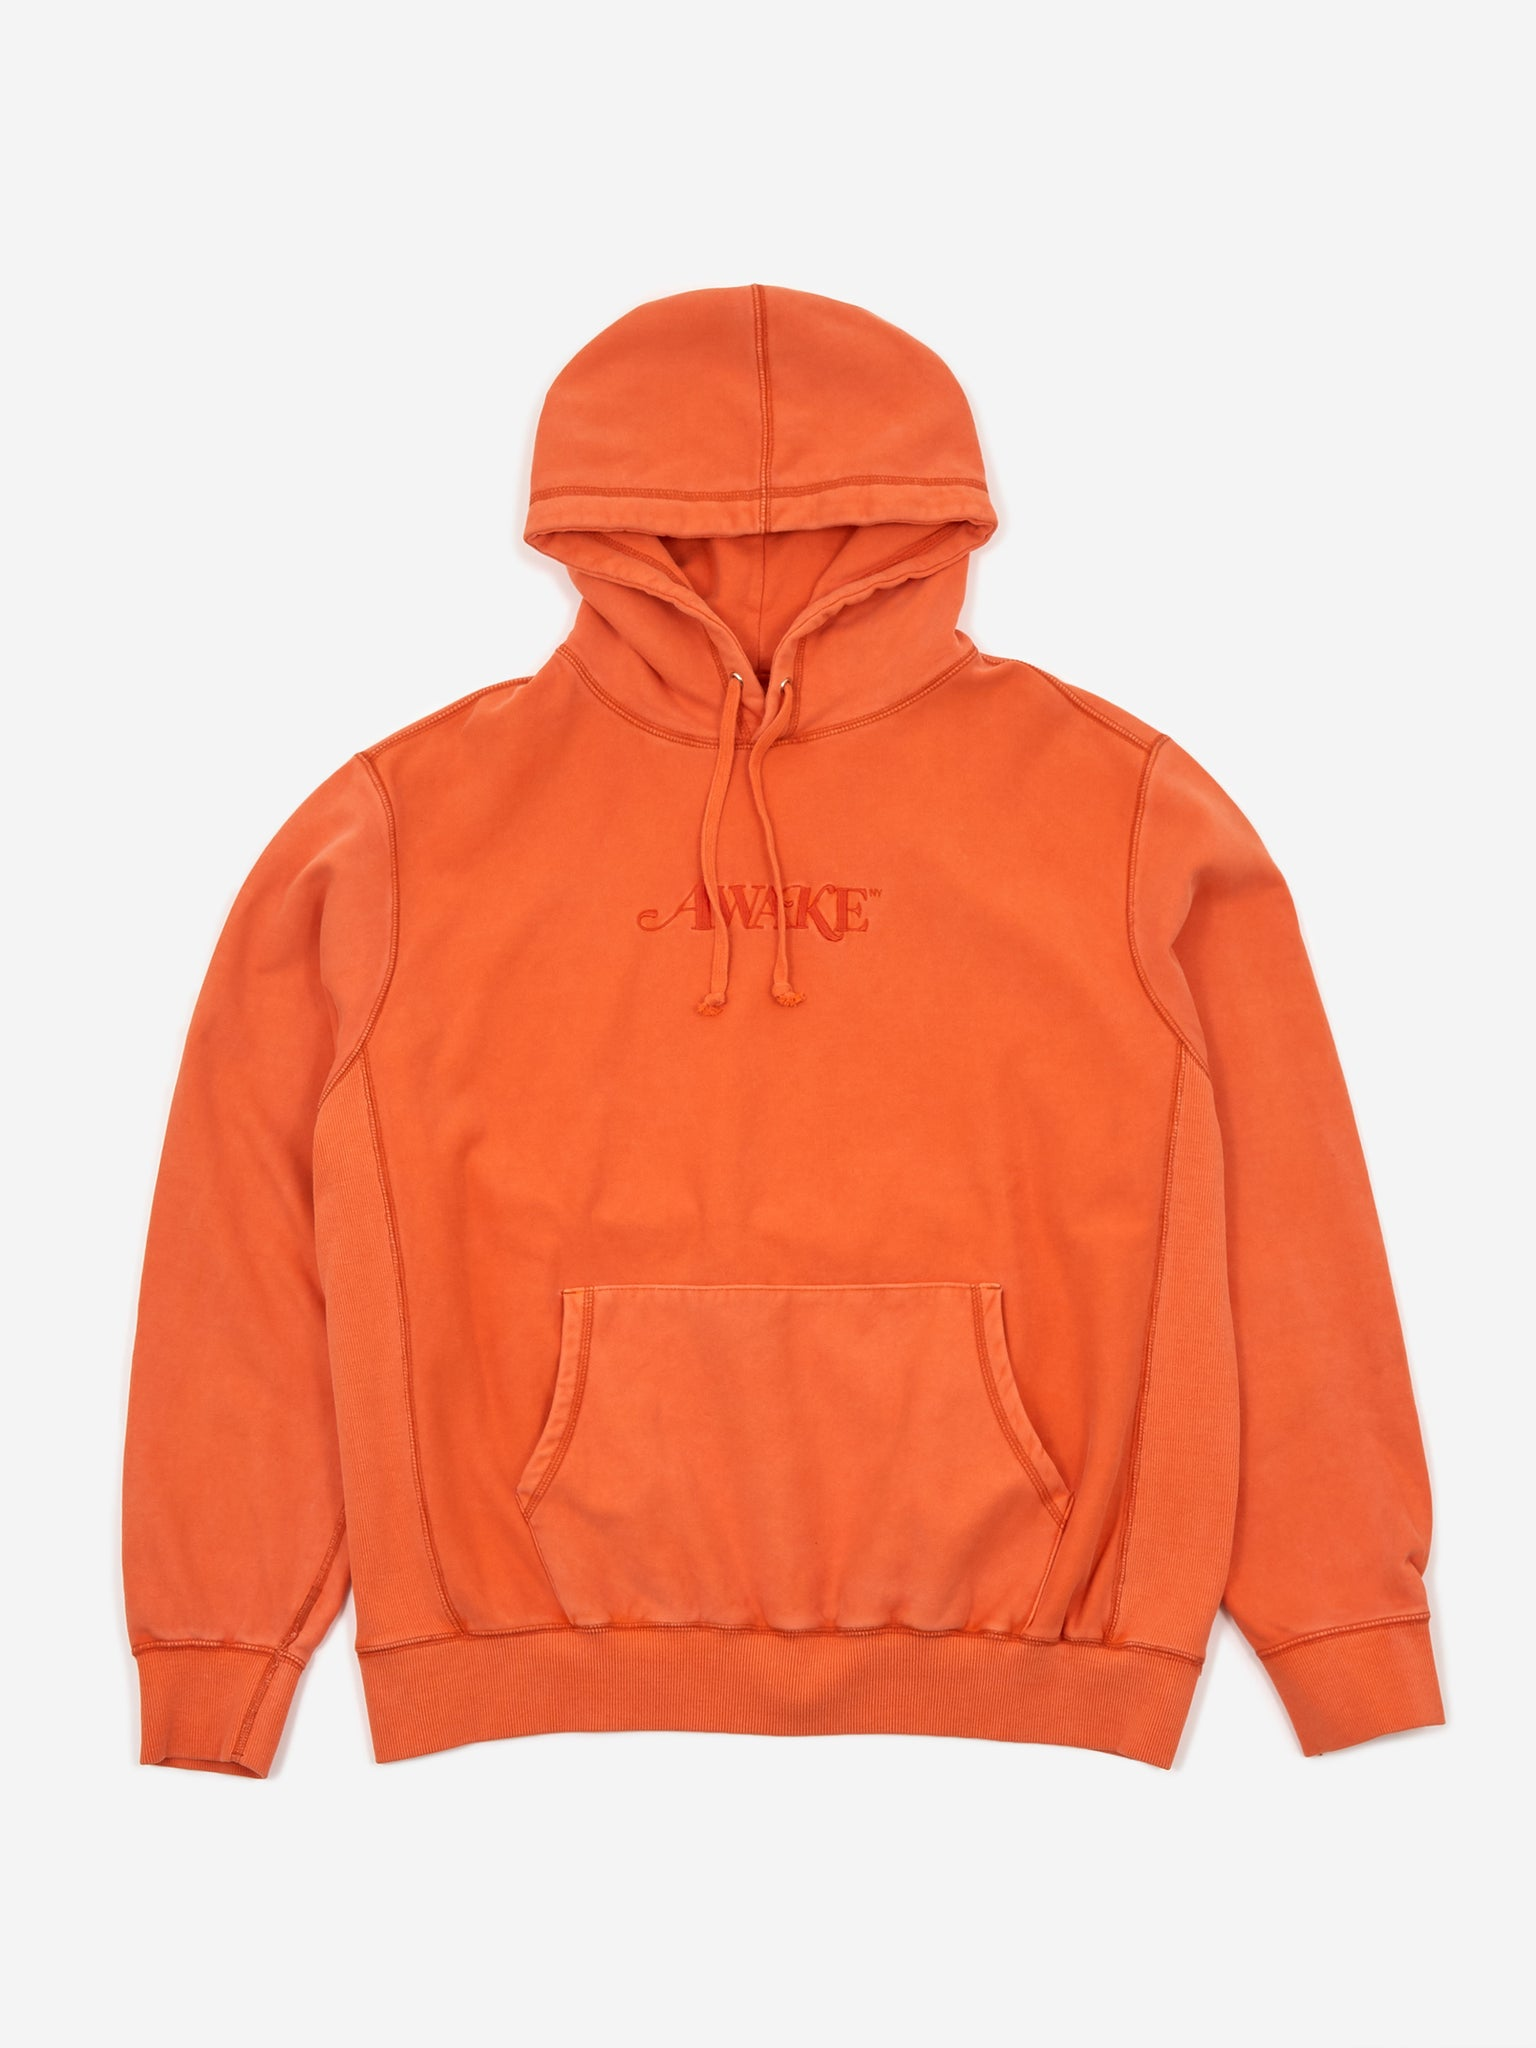 Awake NY Classic Logo Embroidered Hoodie - Red Orange